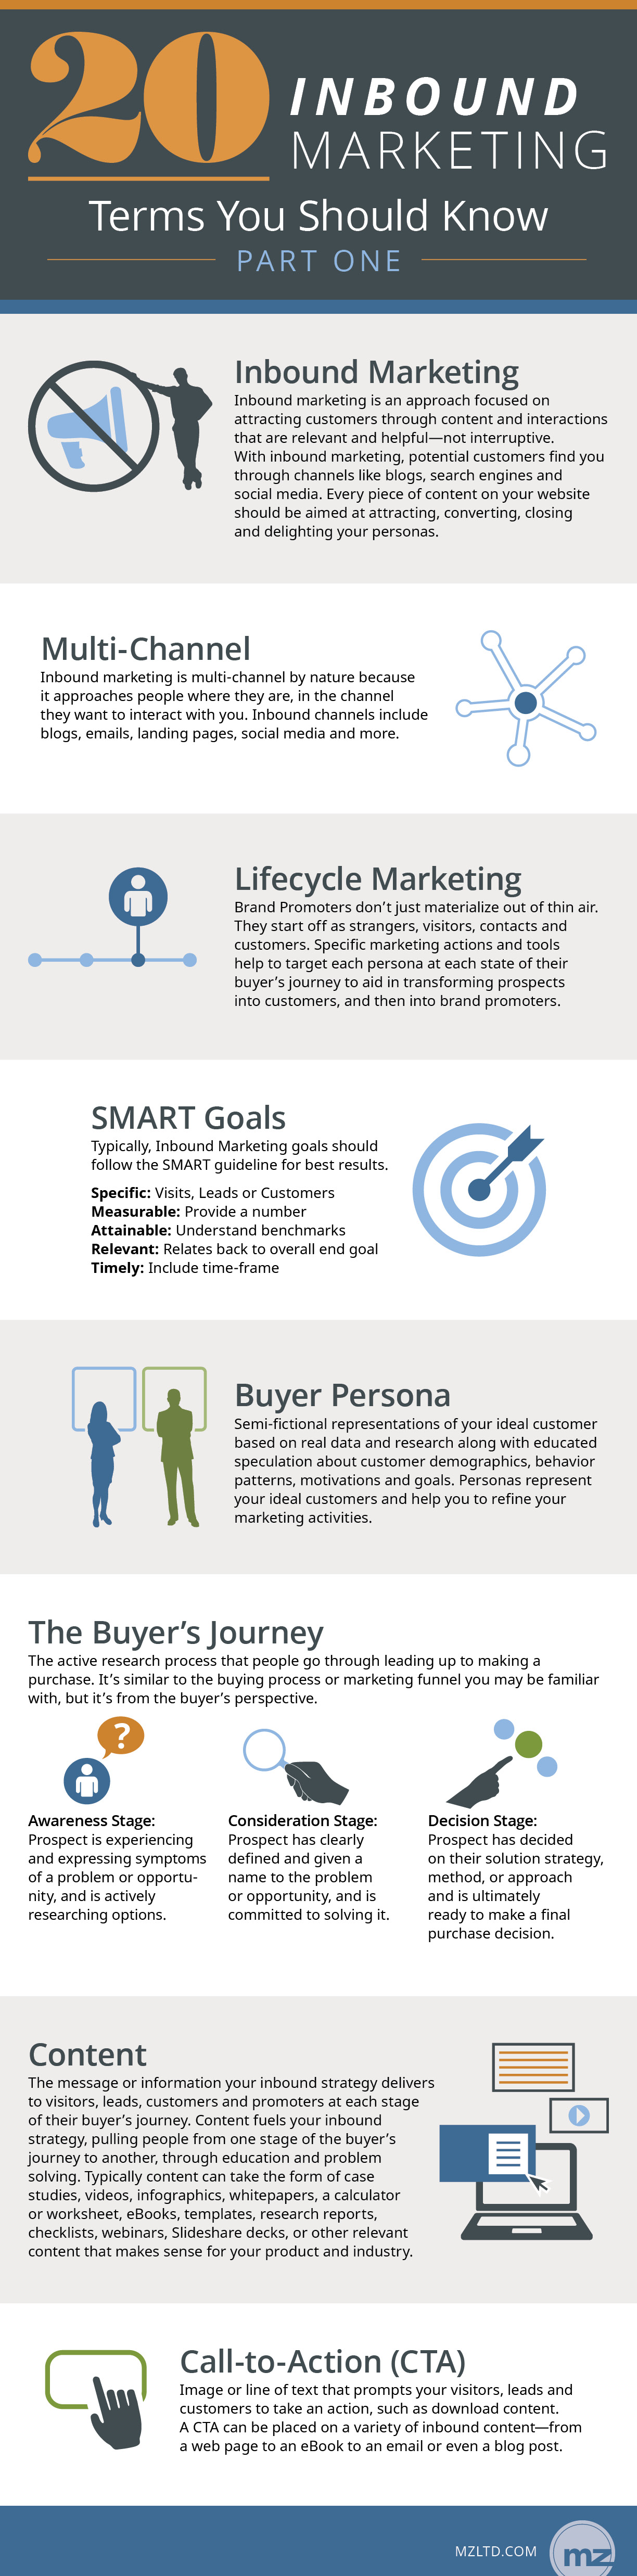 20 Inbound Marketing Terms You Should Know